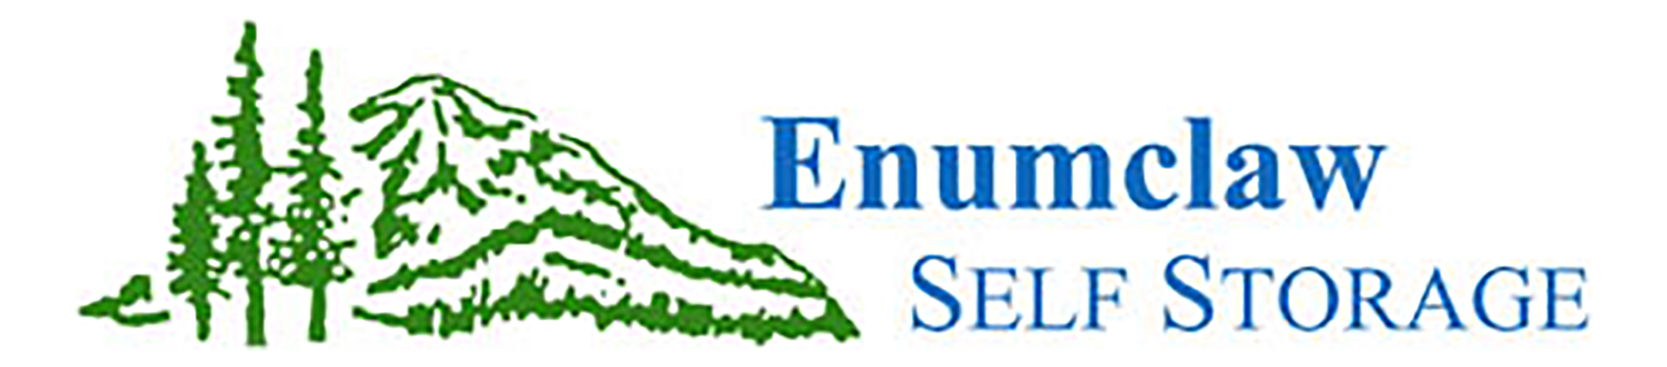 Enumclaw Self Storage